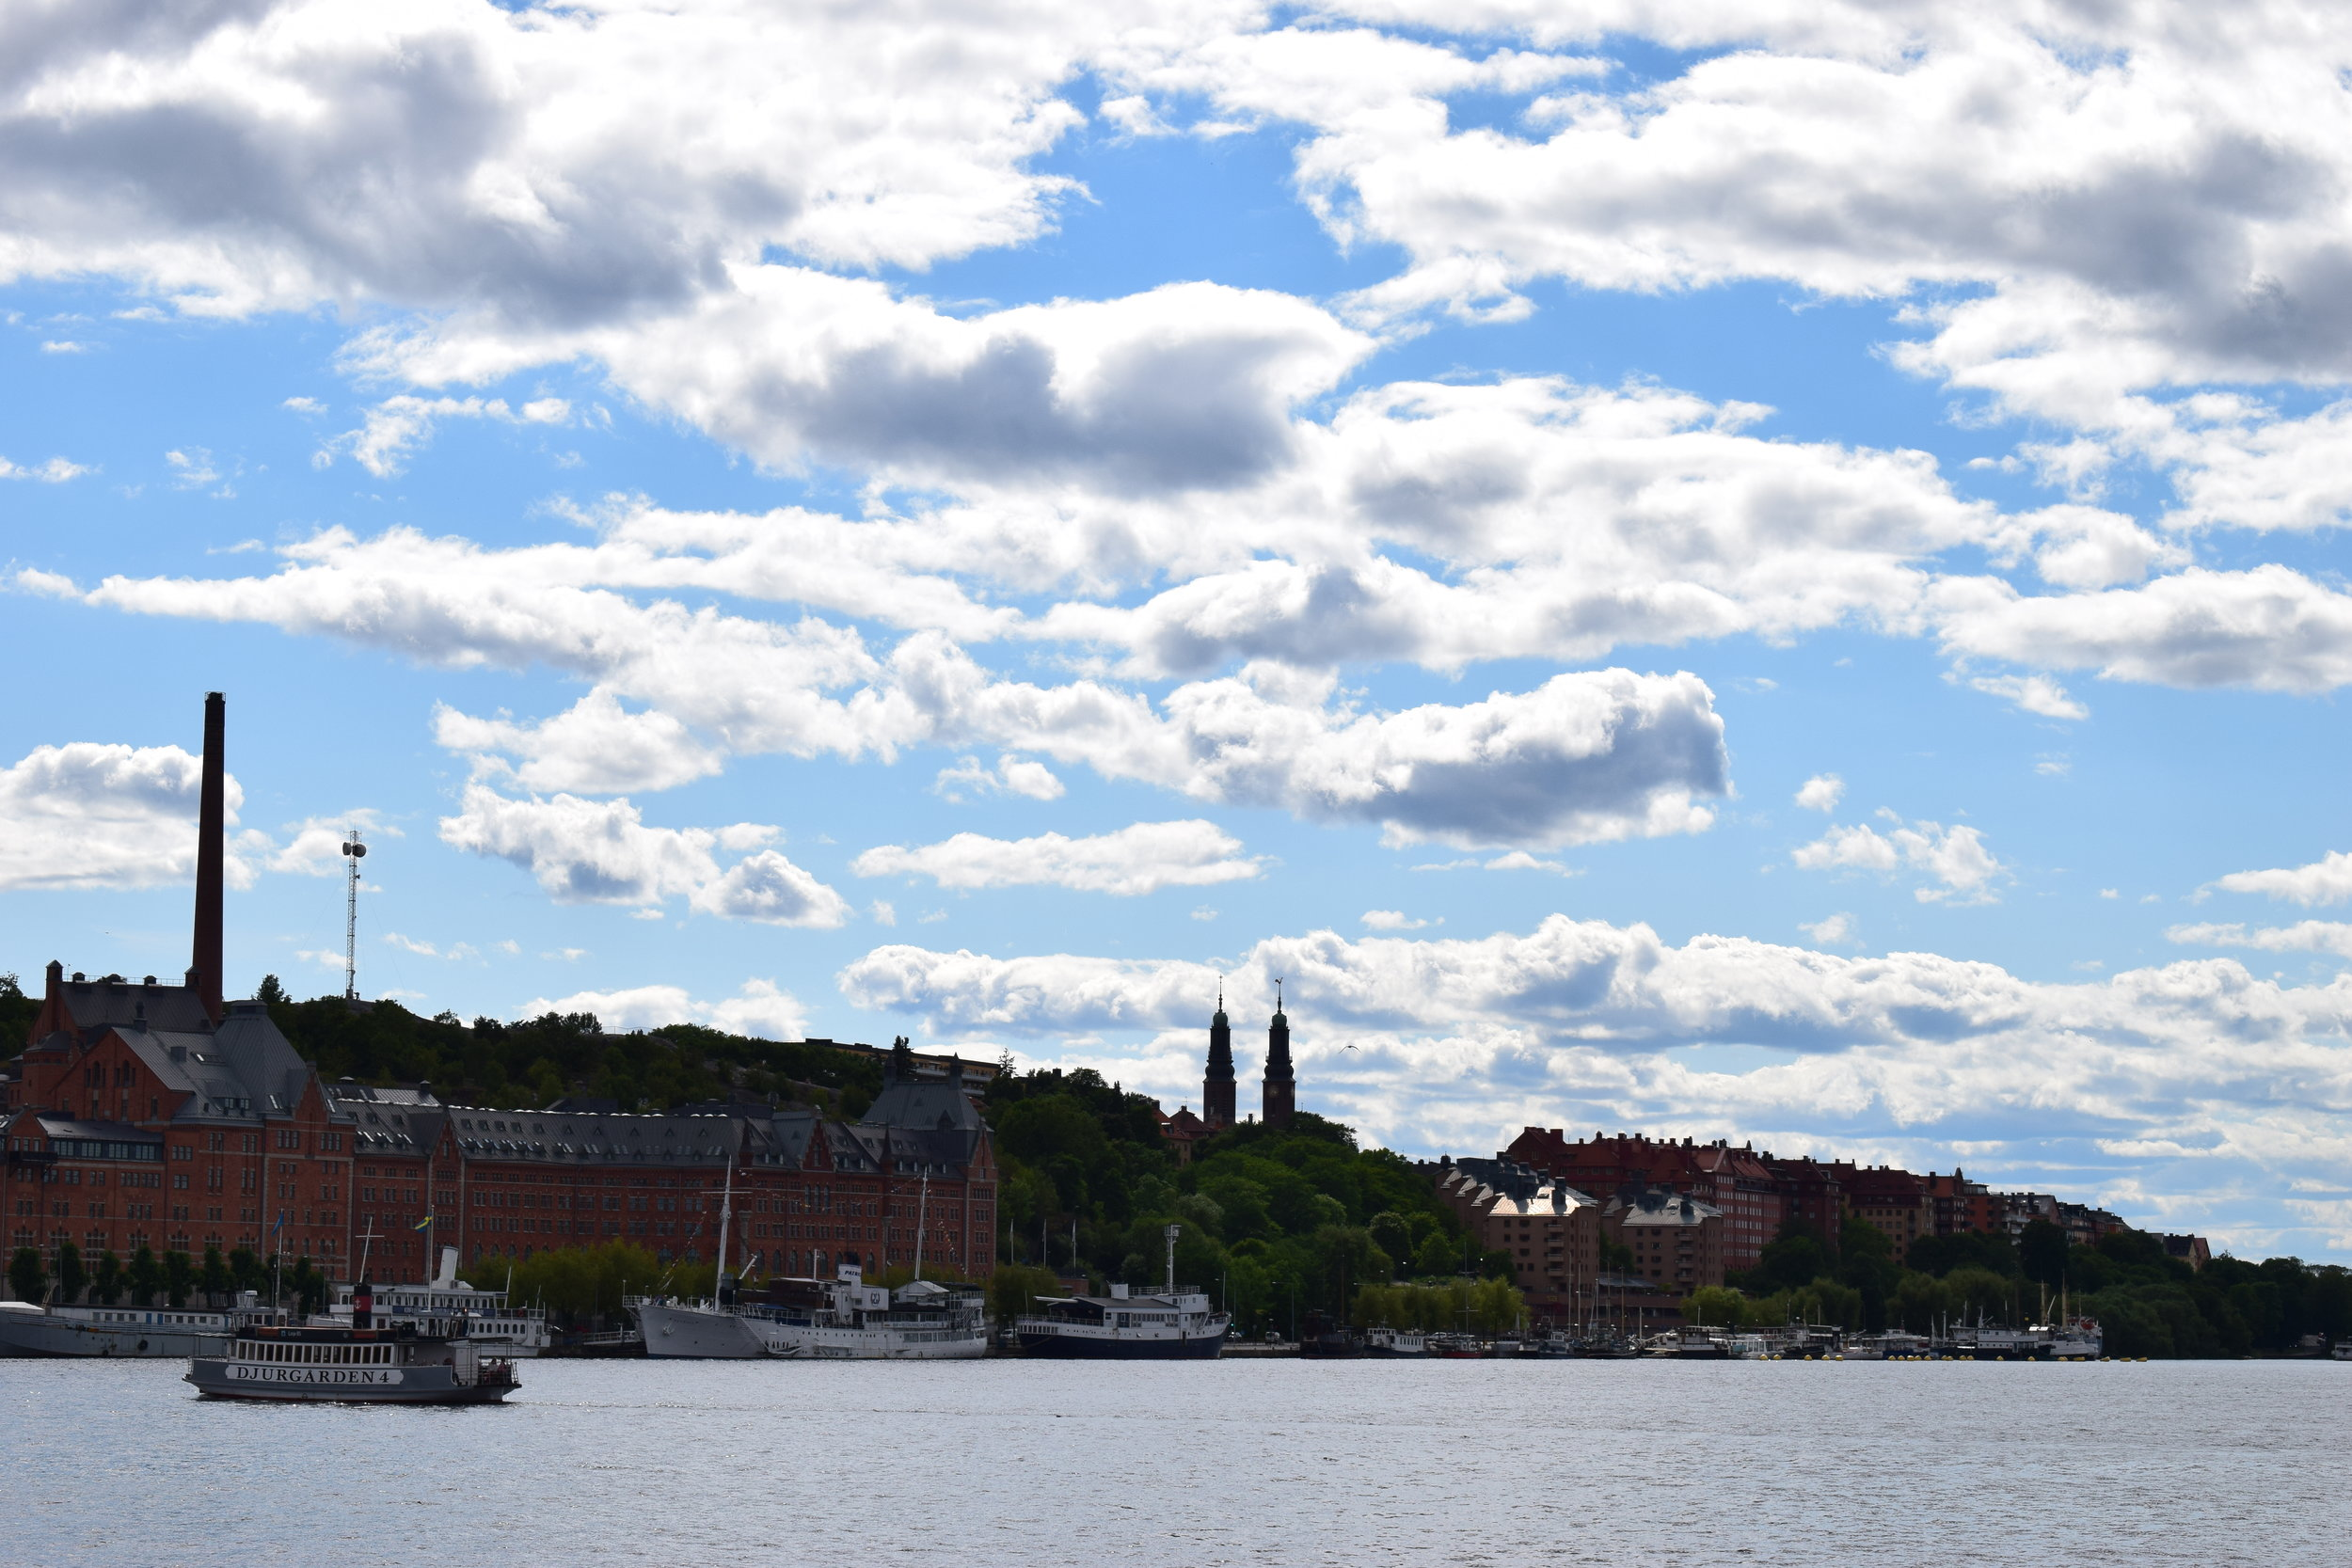 Stockholm City - view of the city, Södermalm